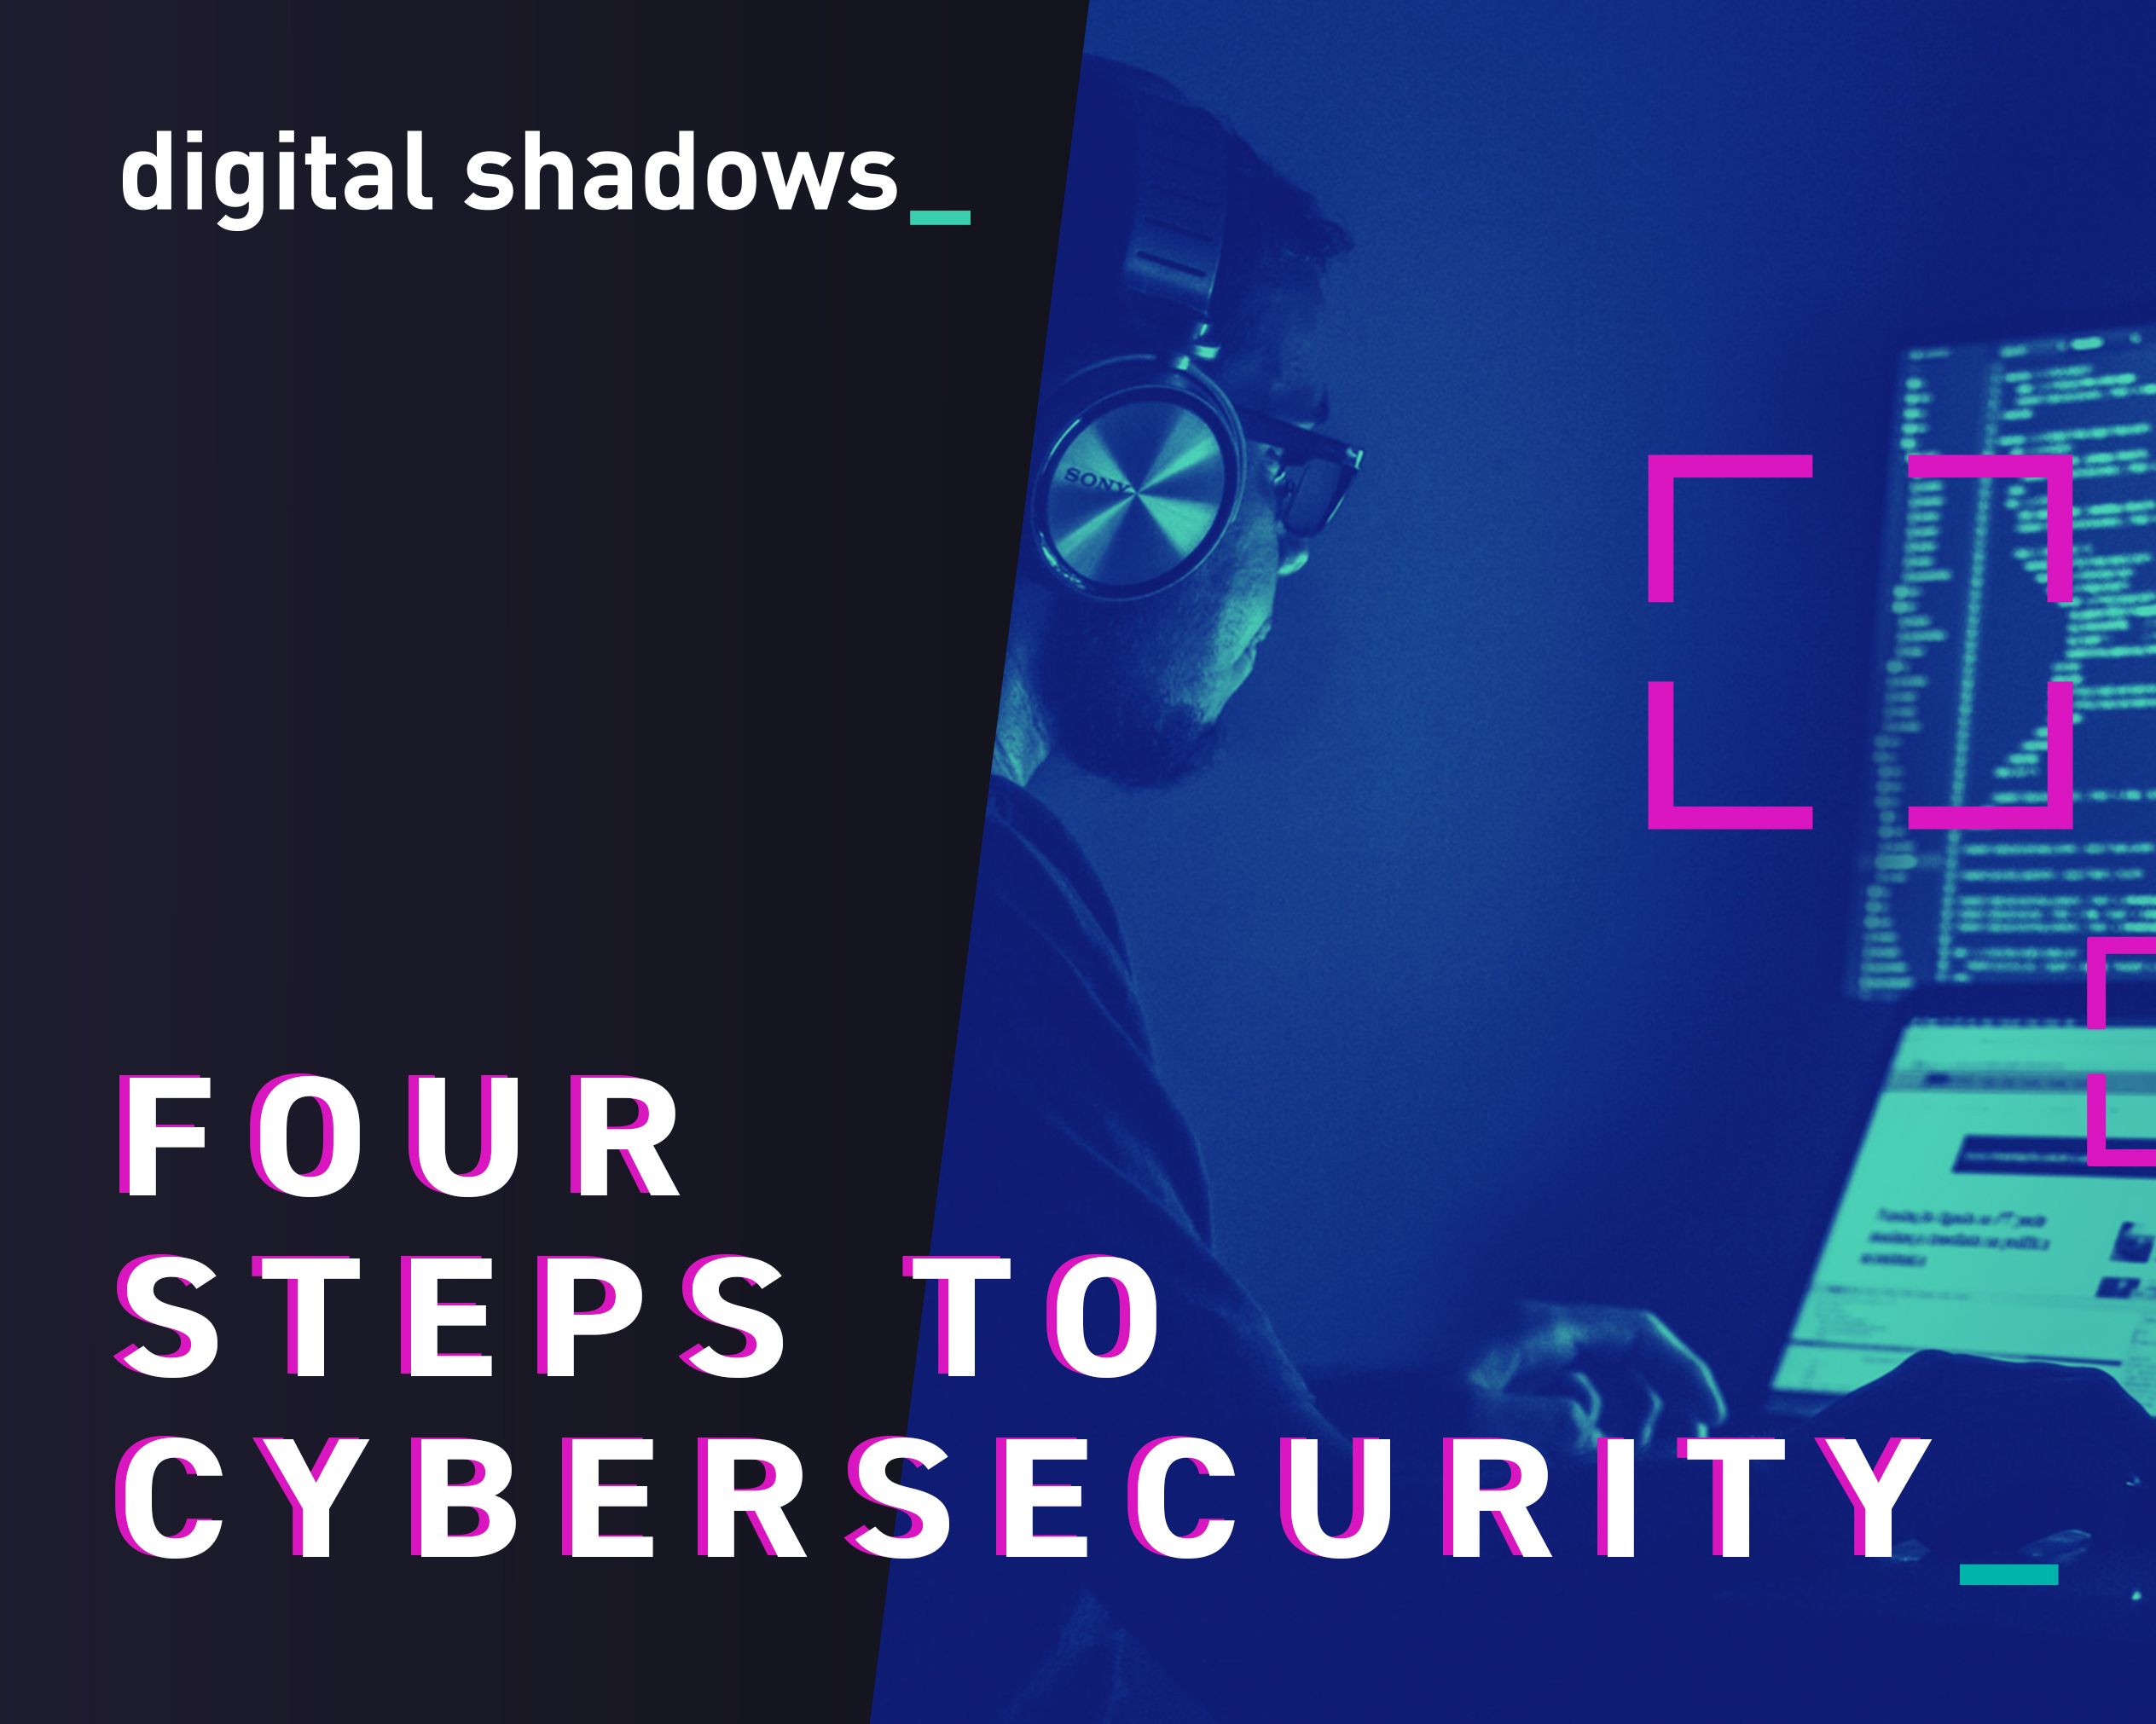 itsa 365: Four steps to cybersecurity